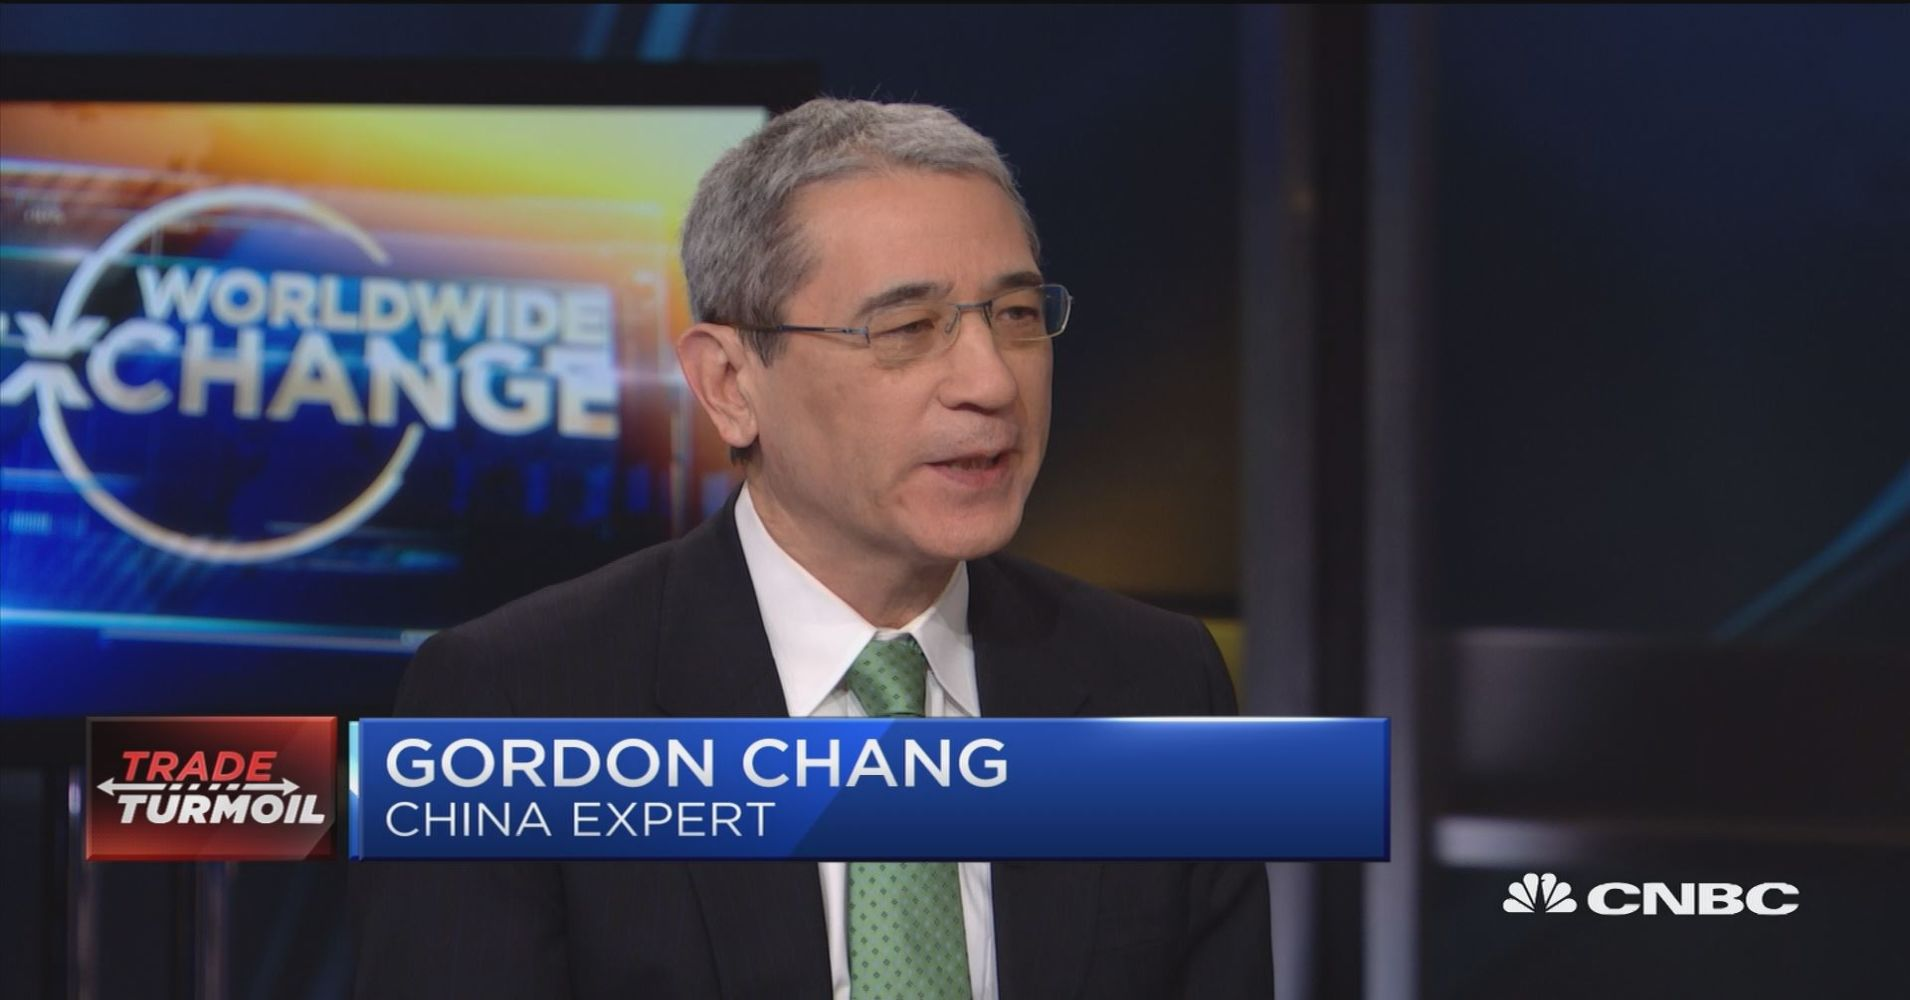 Gordon Chang and the Chinese Dot-Com Bubble